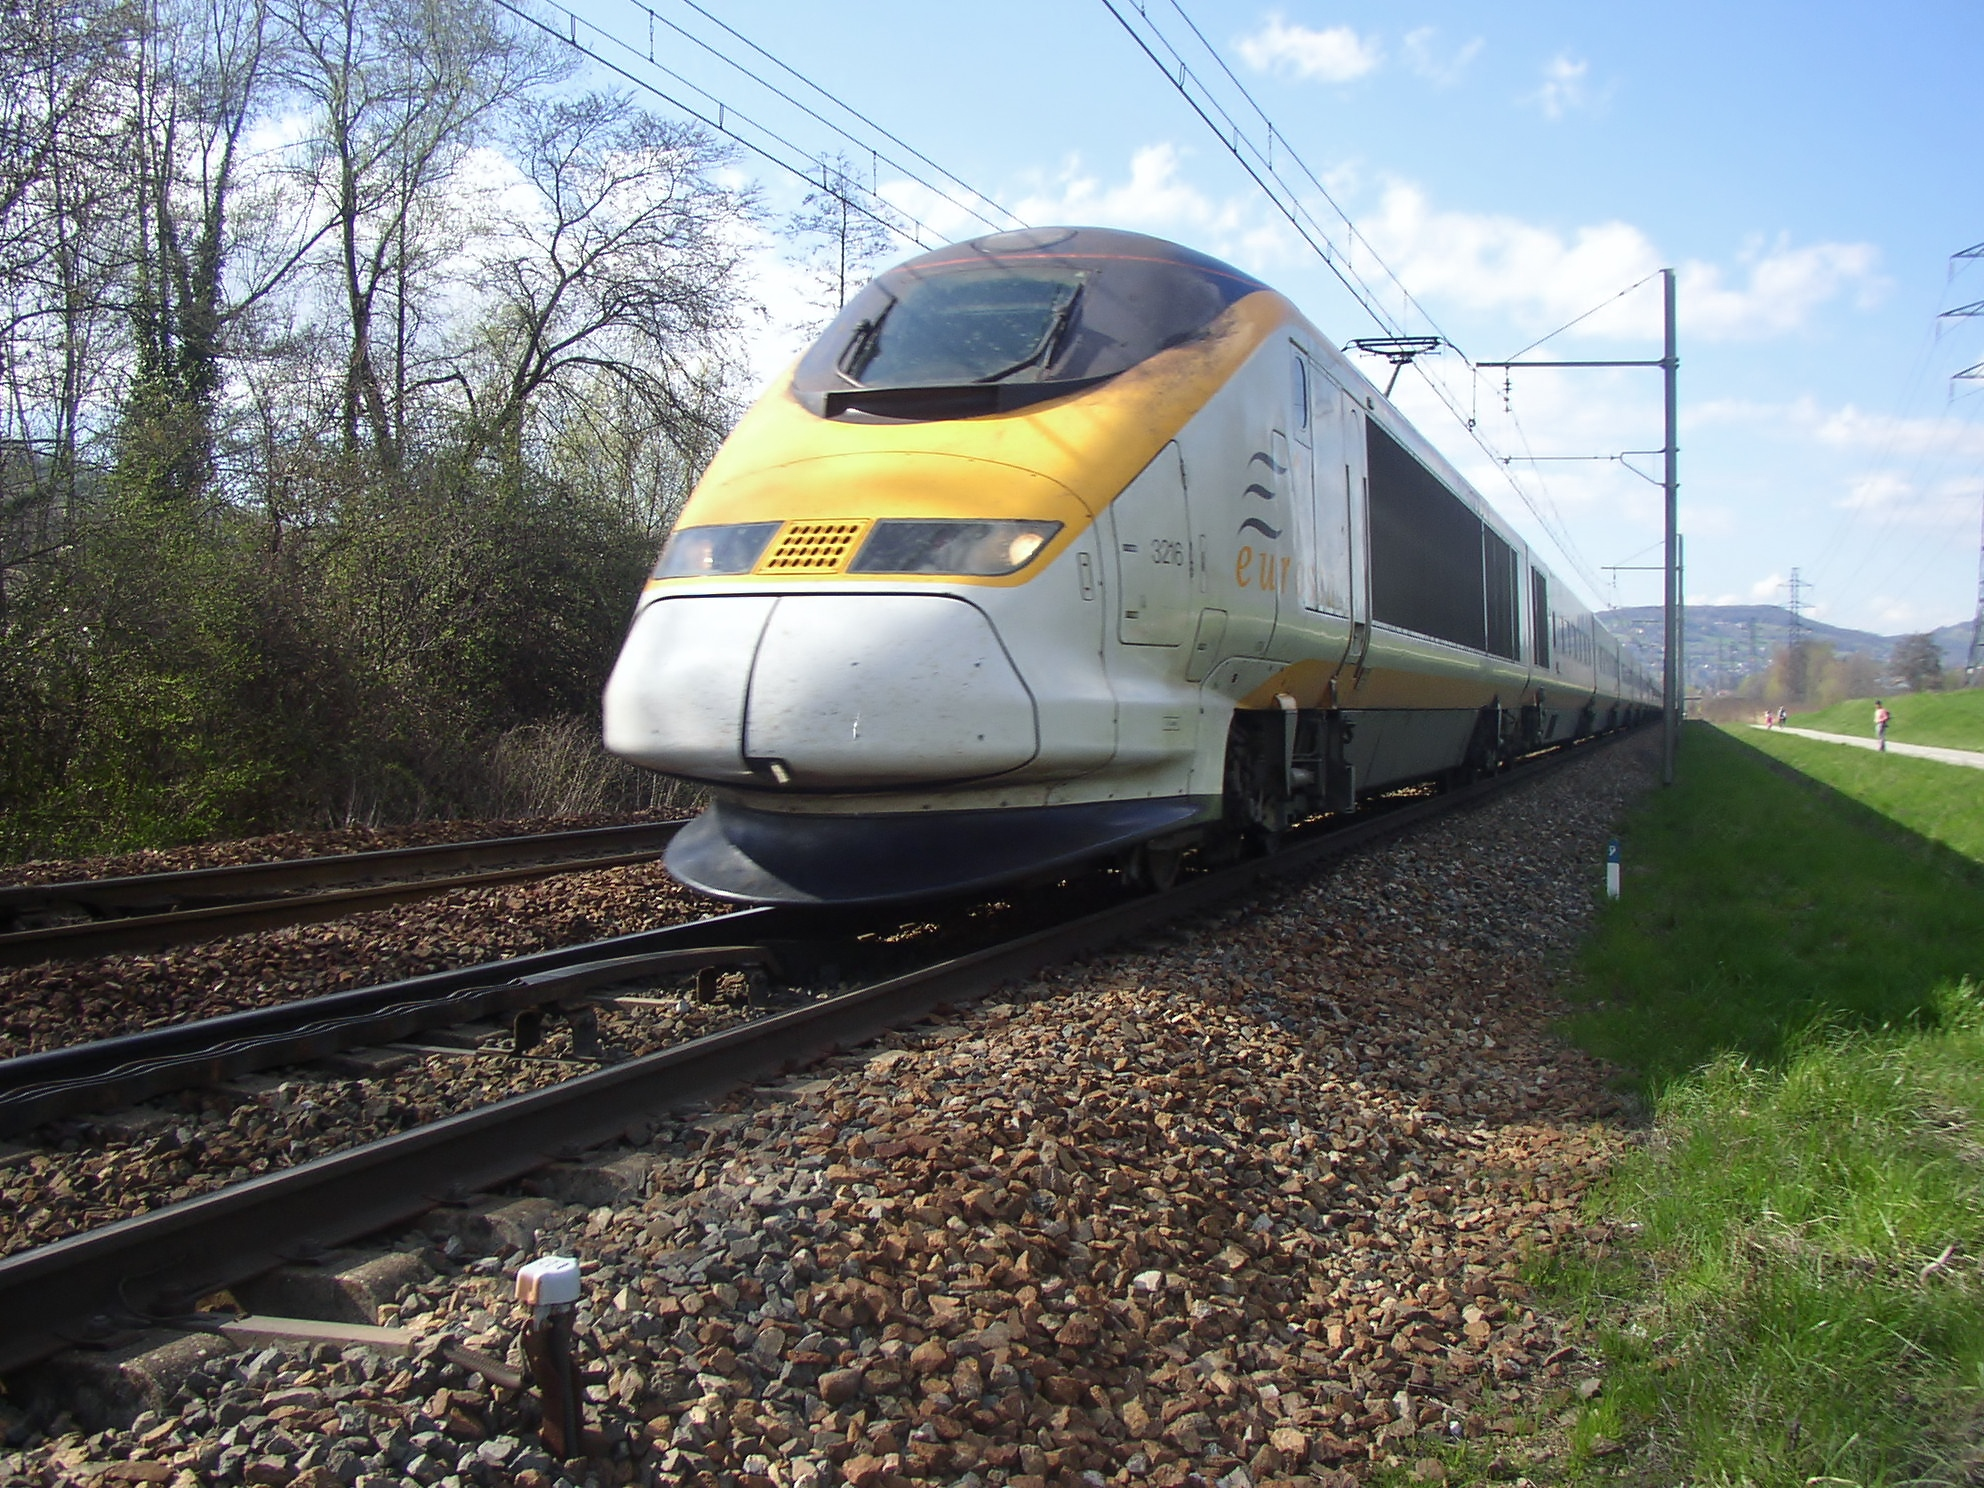 Eurostar trains. Photo: Flickr, Bernard Pepellin